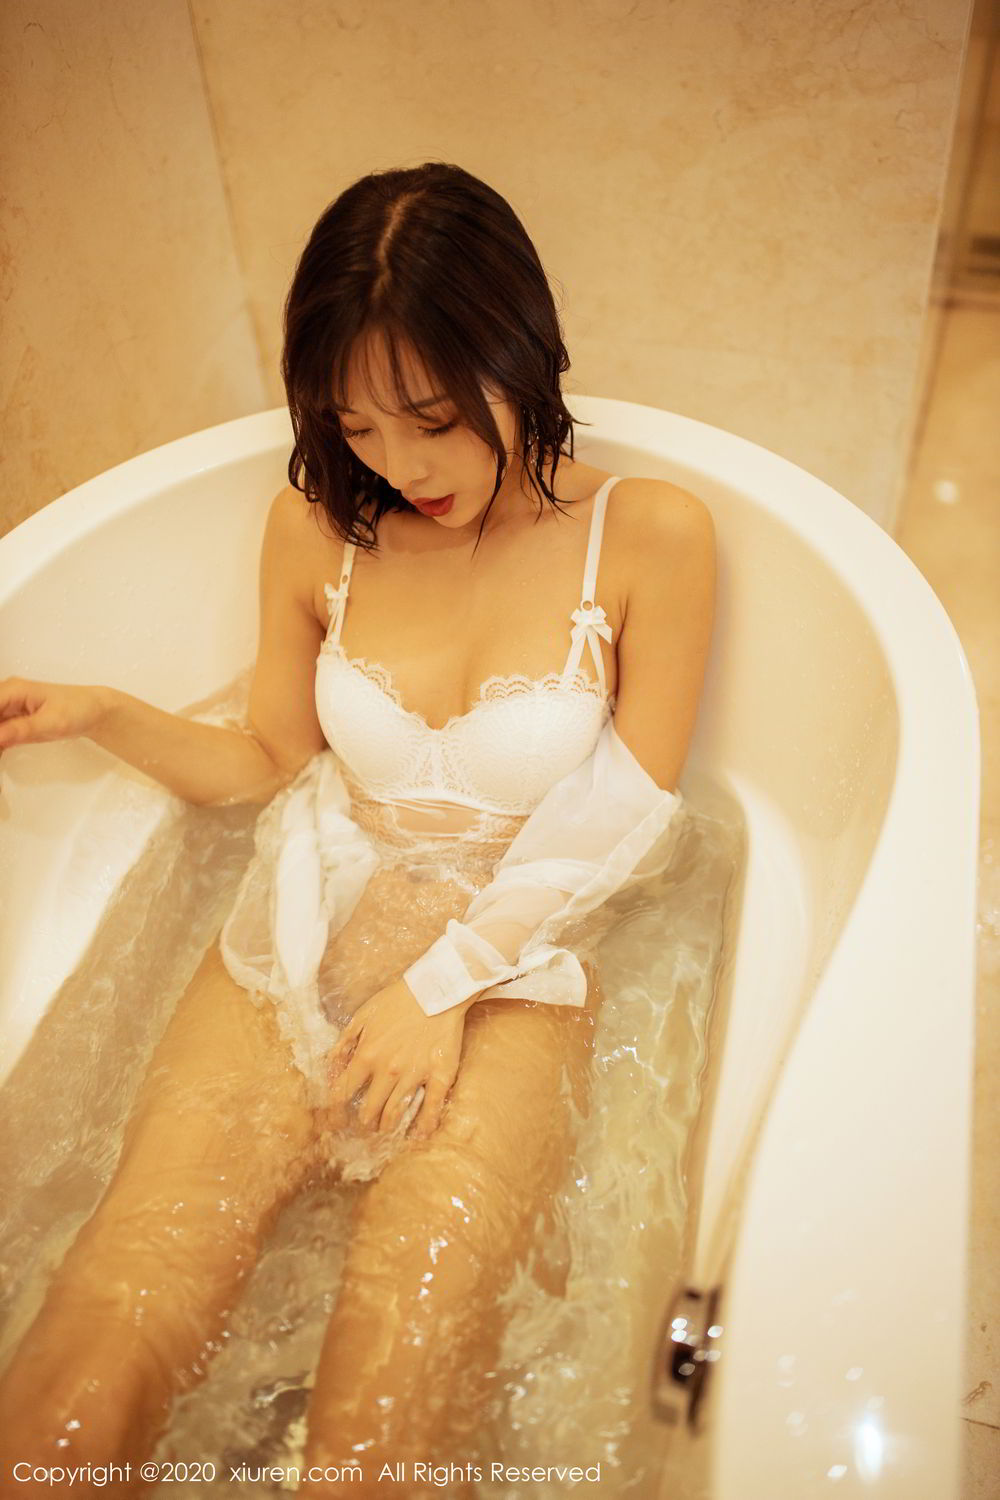 [XiuRen] Vol.2158 Chen Xiao Miao 50P, Bathroom, Chen Xiao Miao, Tall, Wet, Xiuren